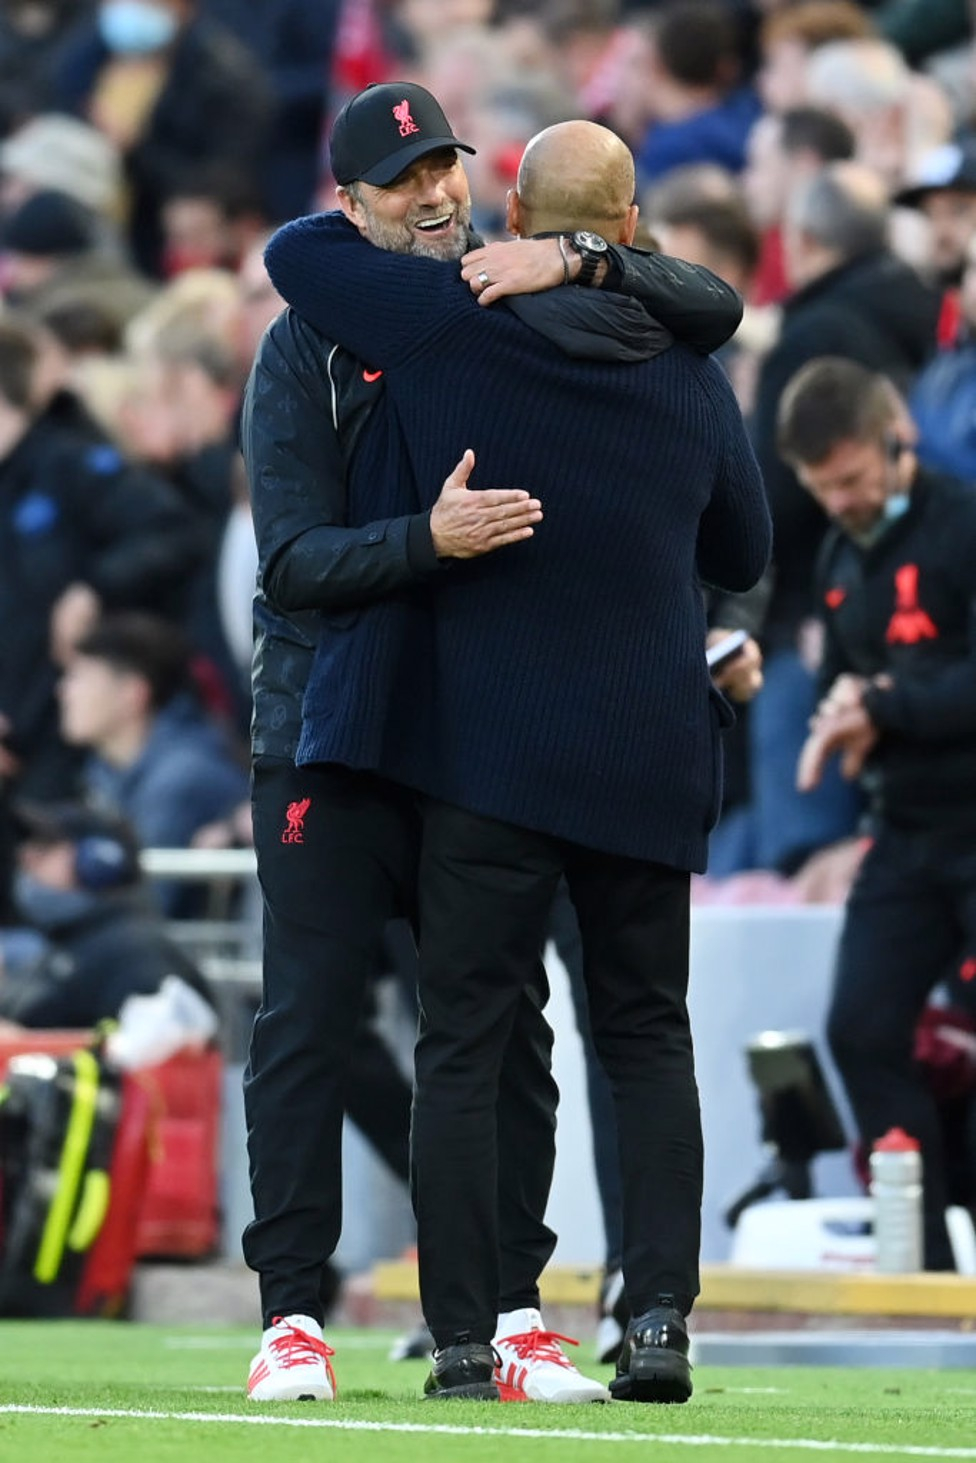 SPOILS SHARED : Guardiola and Klopp end with a hug - points shared.